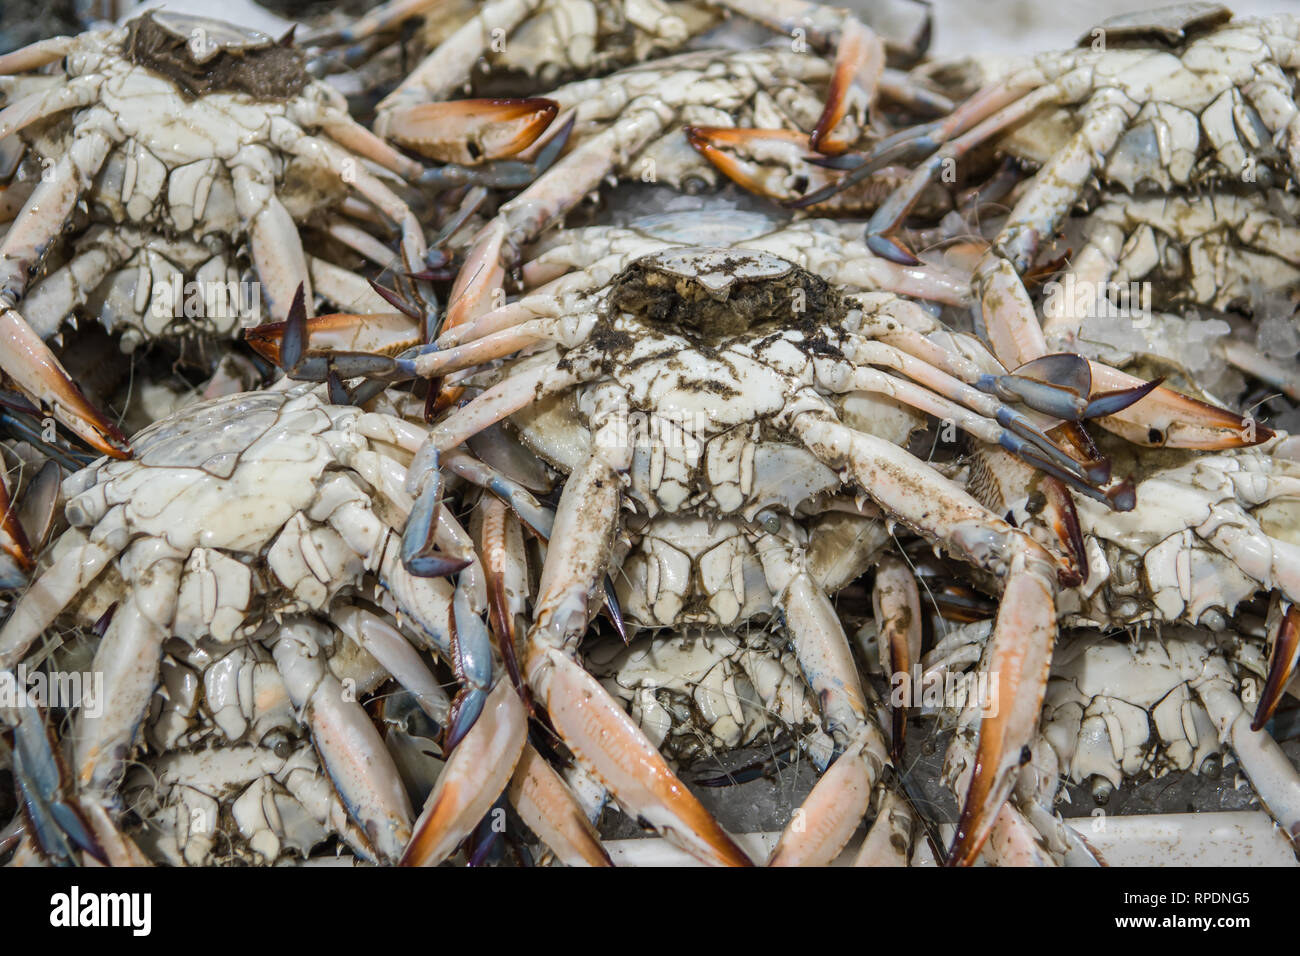 Fresh blue crab for sale at the modern fish market located